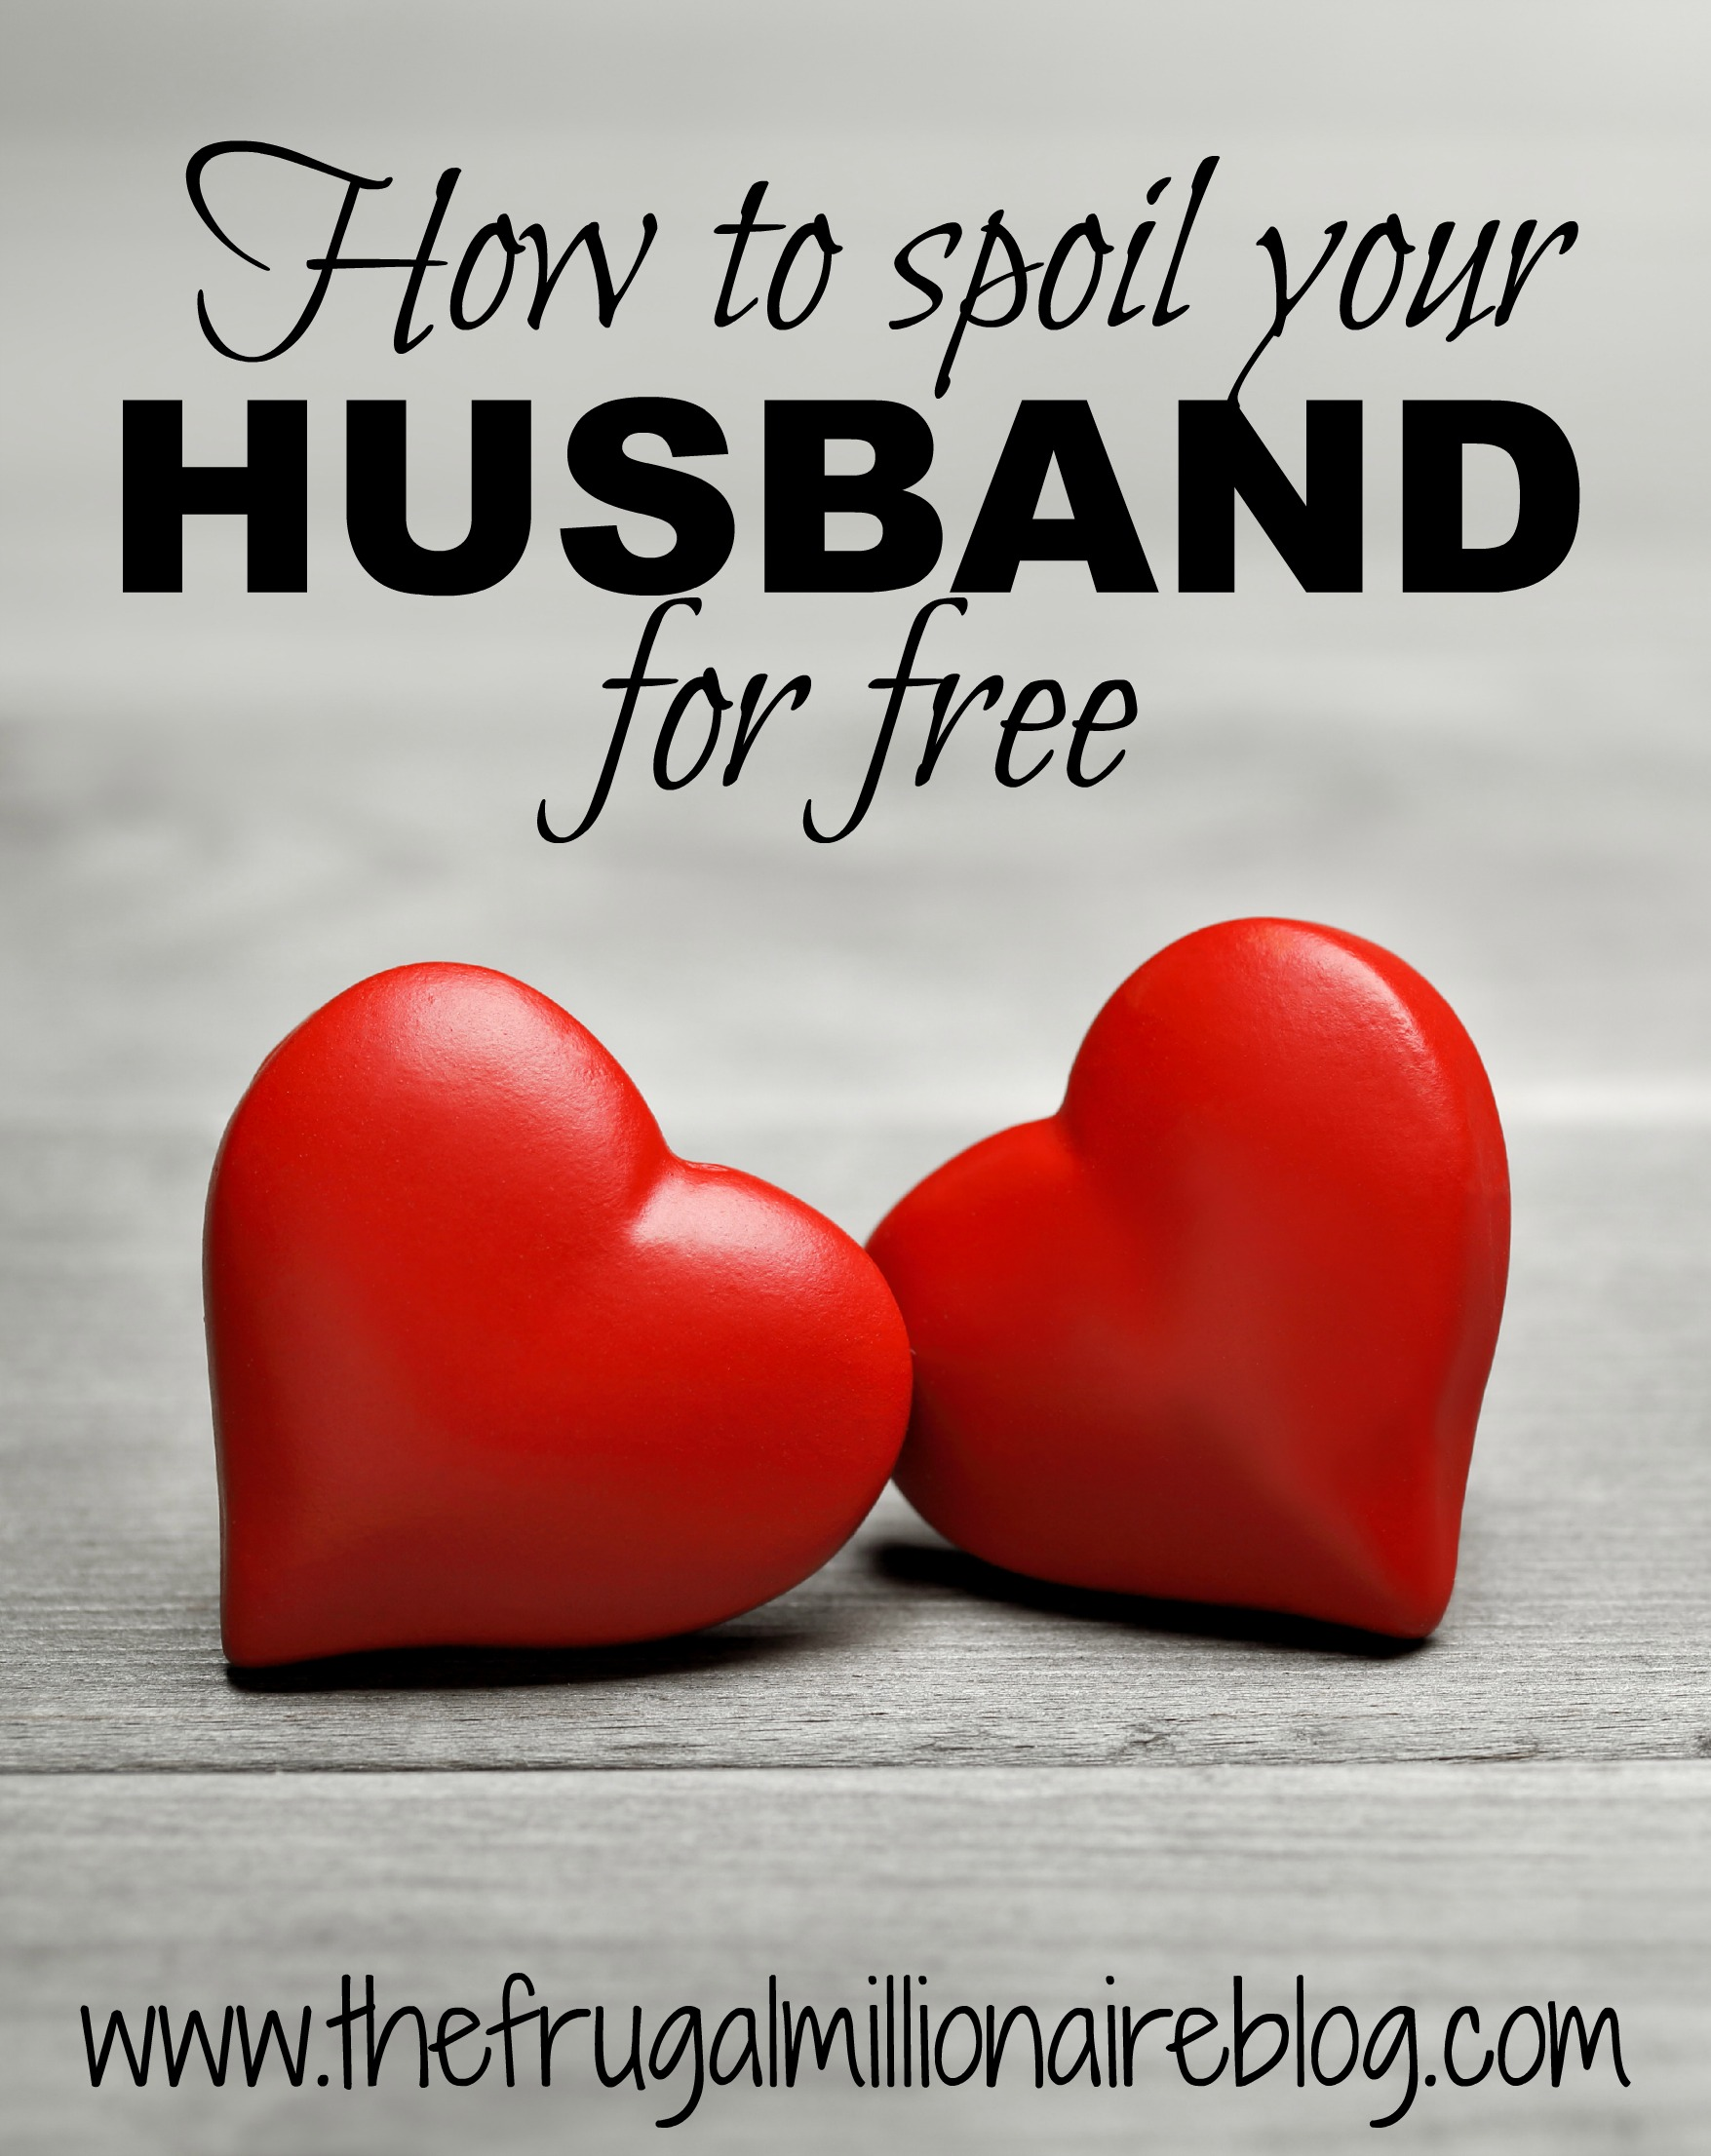 Husband lover: what to do 6